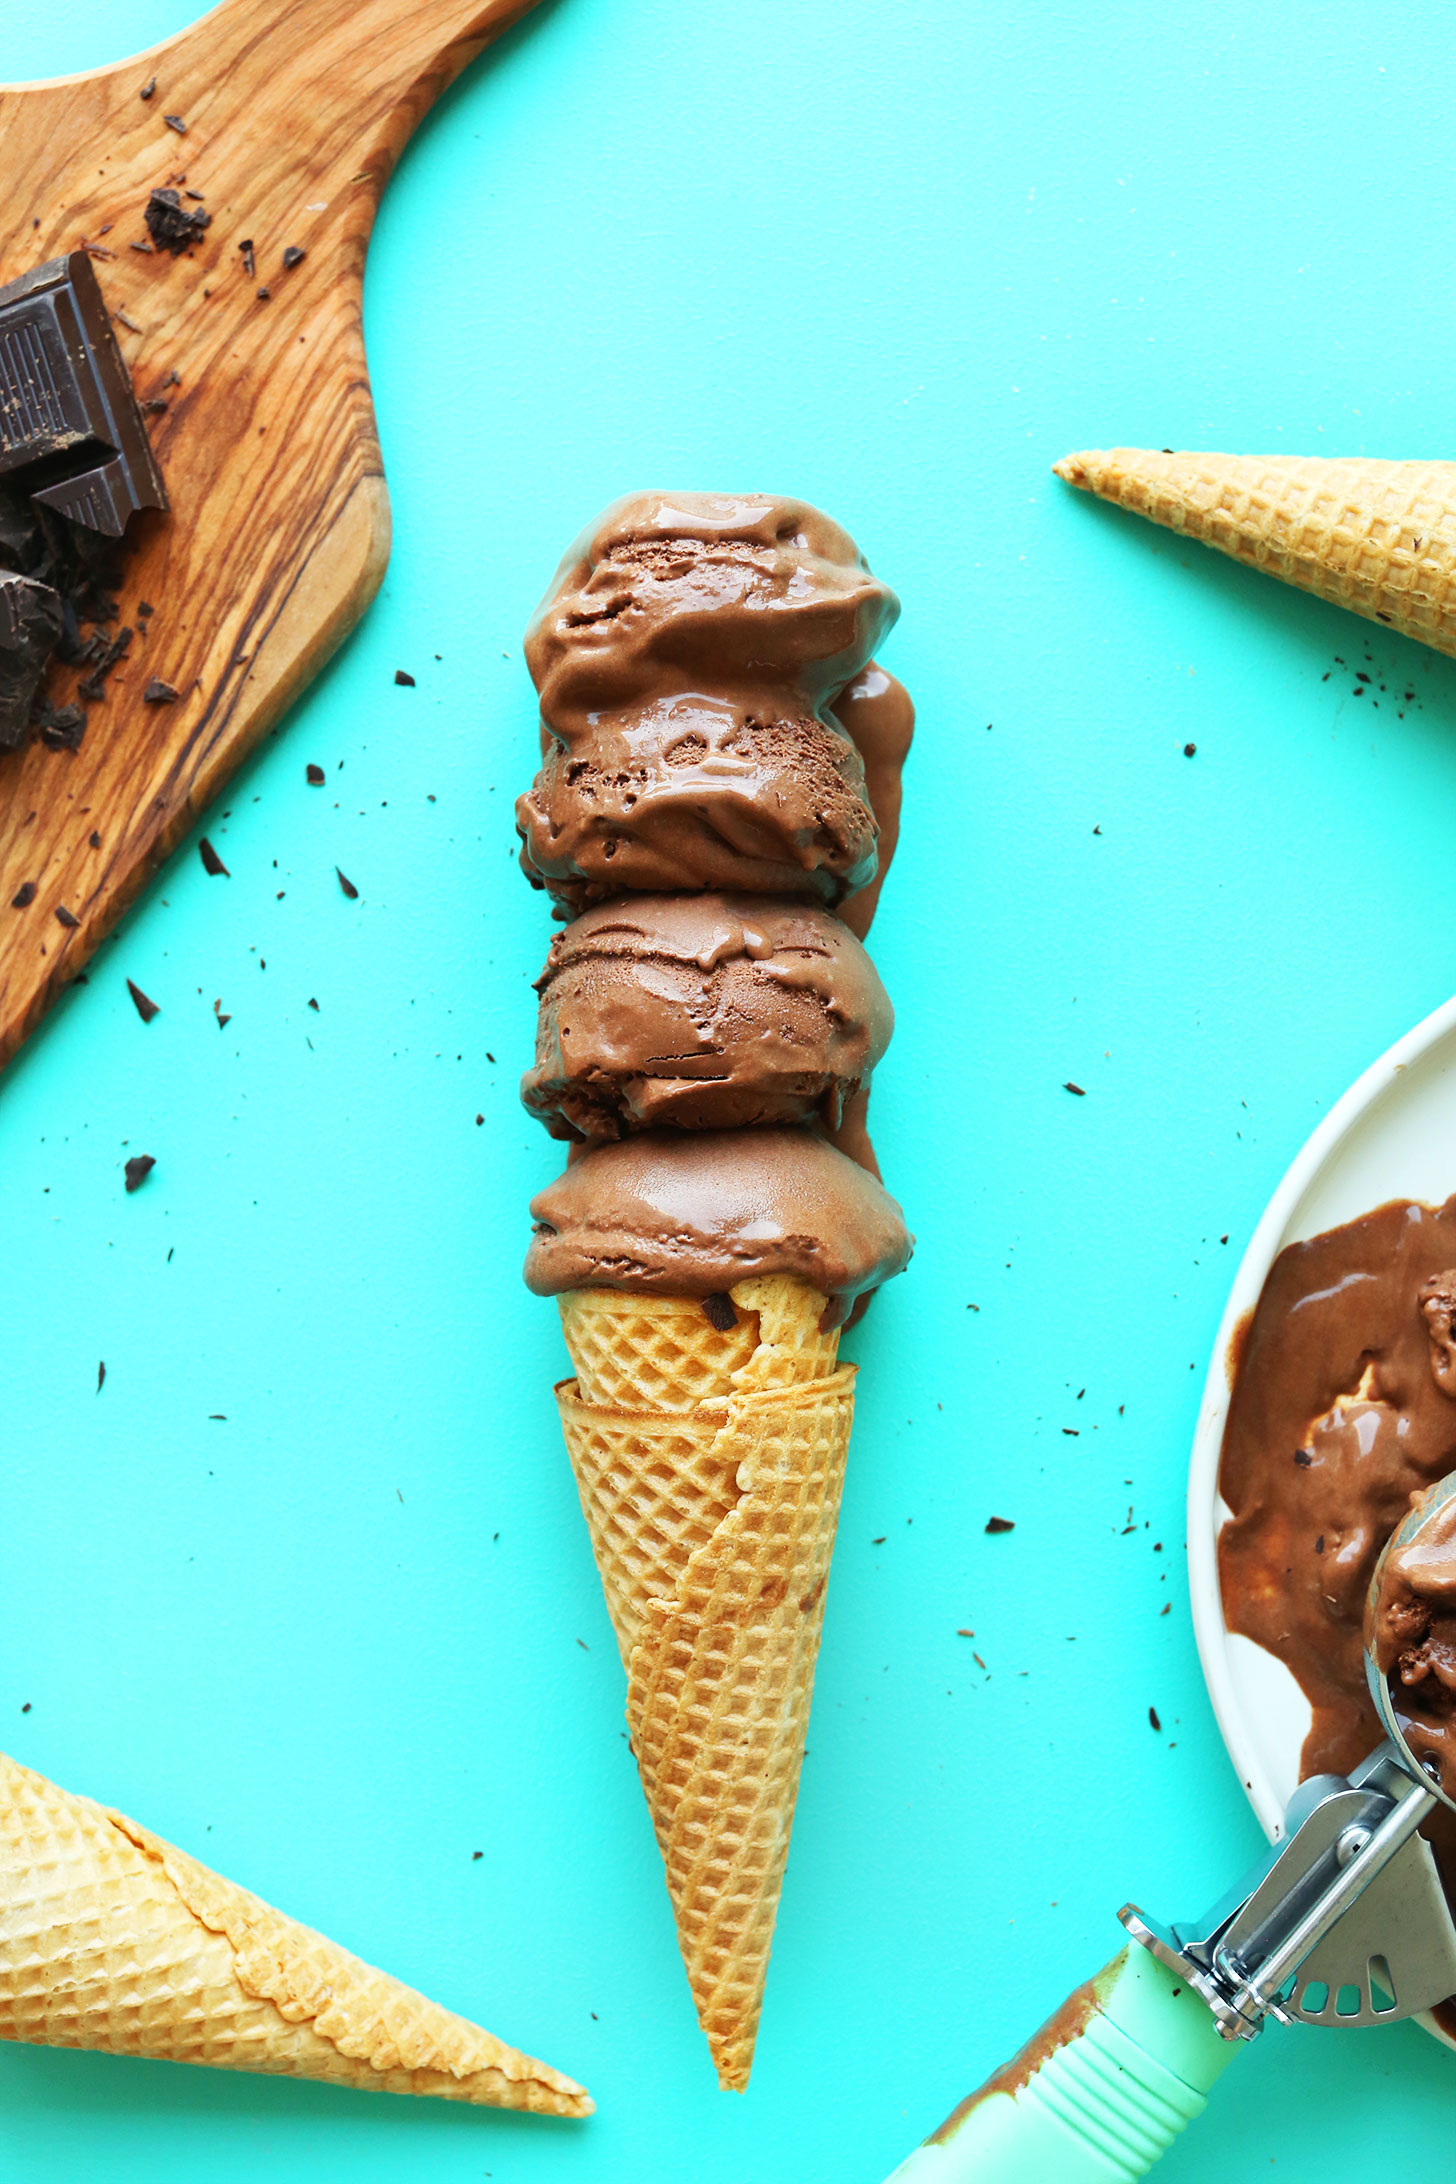 Cone topped with scoops of our amazing vegan chocolate ice cream recipe